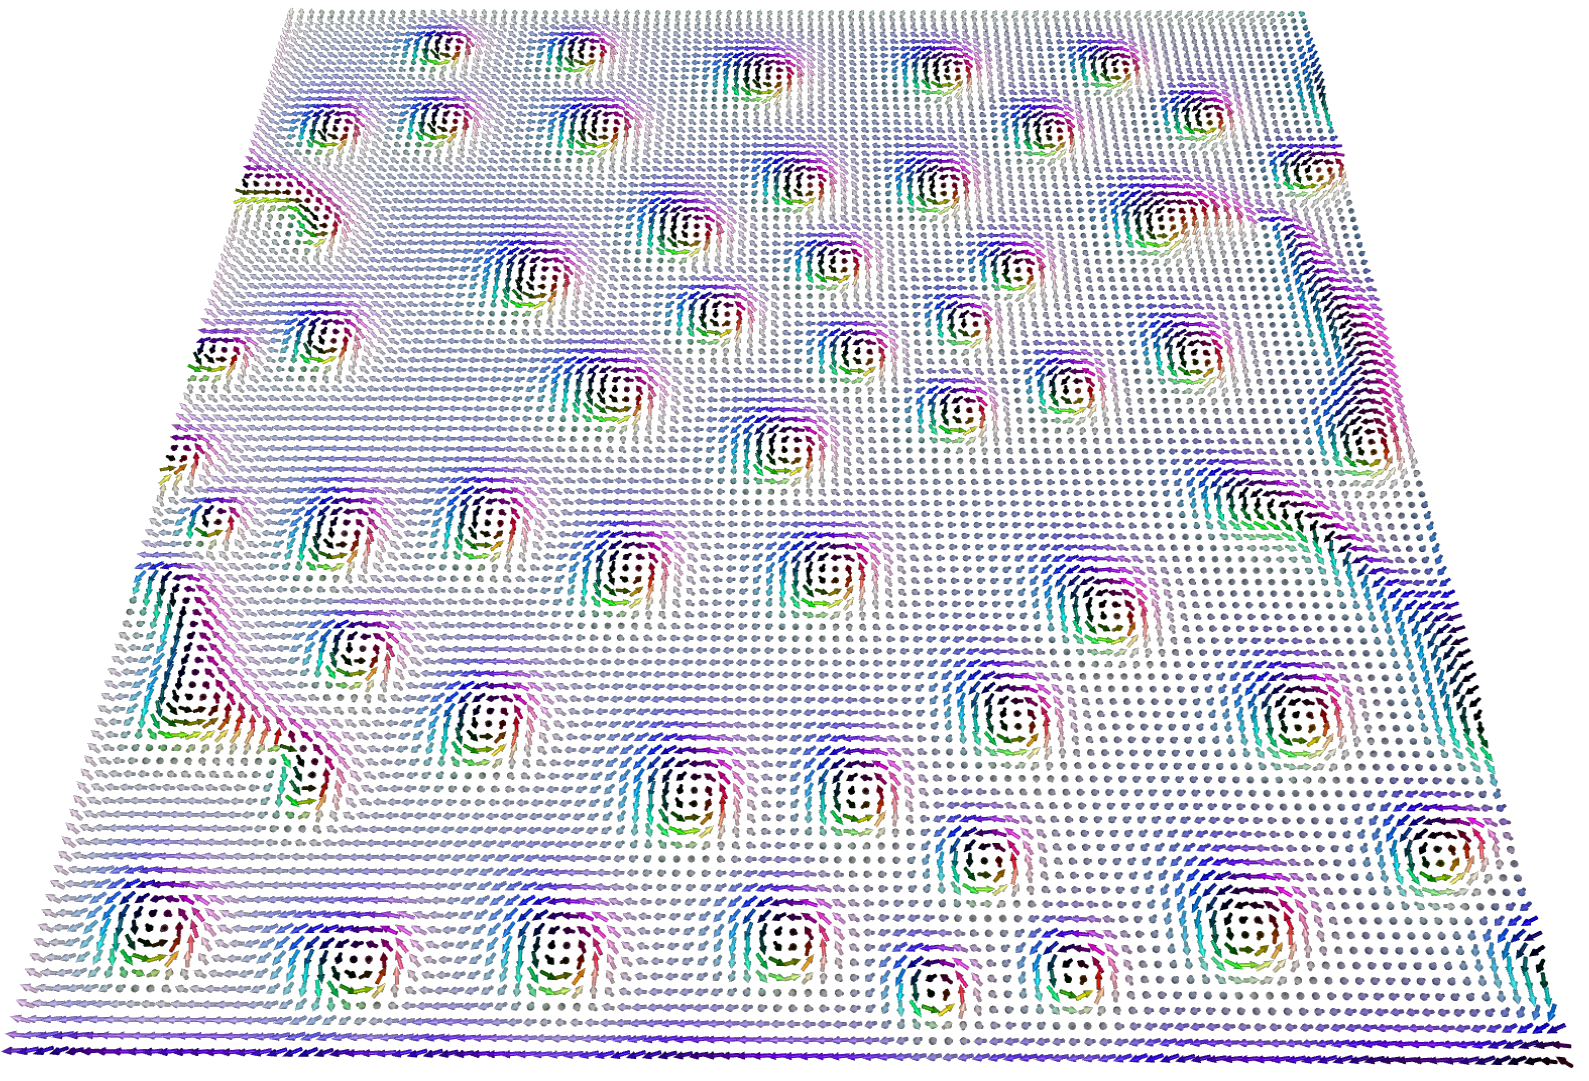 Spin simulation viewed with Spirit Web